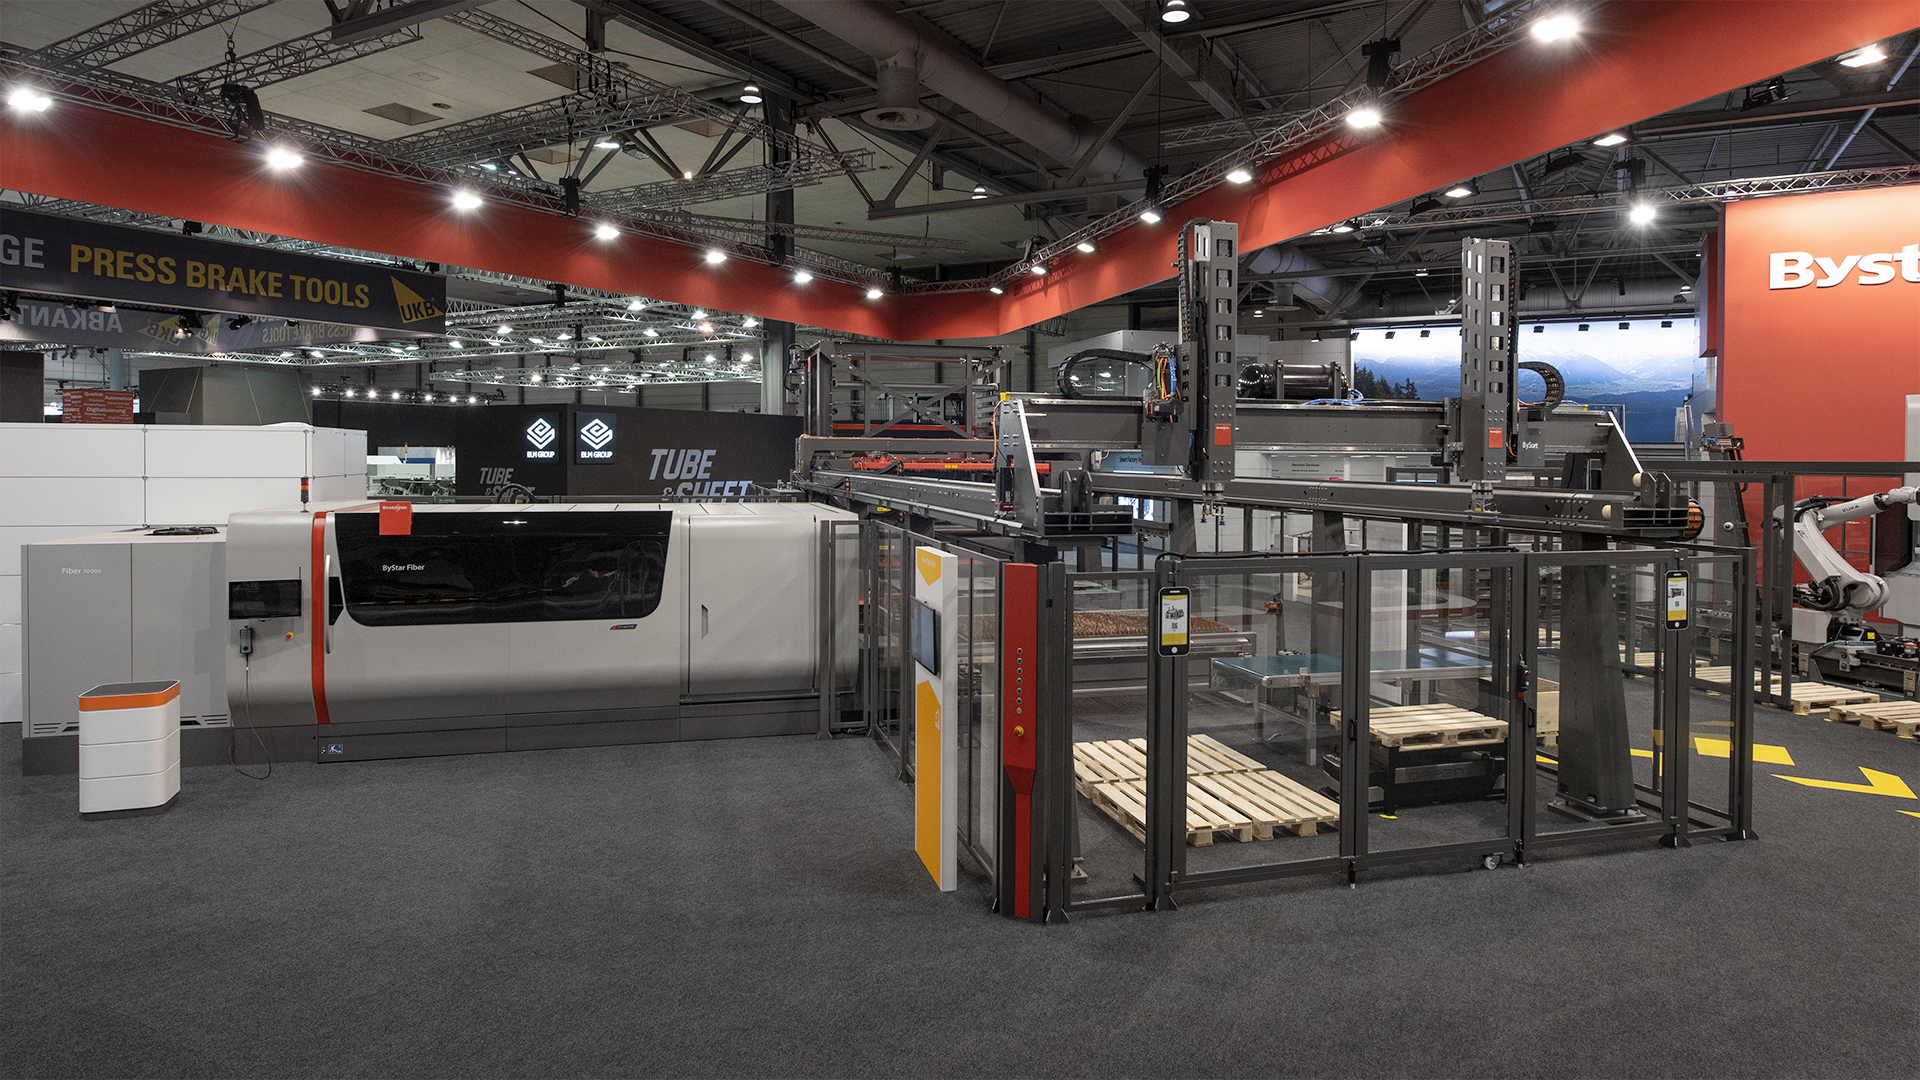 The fully automated Production Line – Bystronic